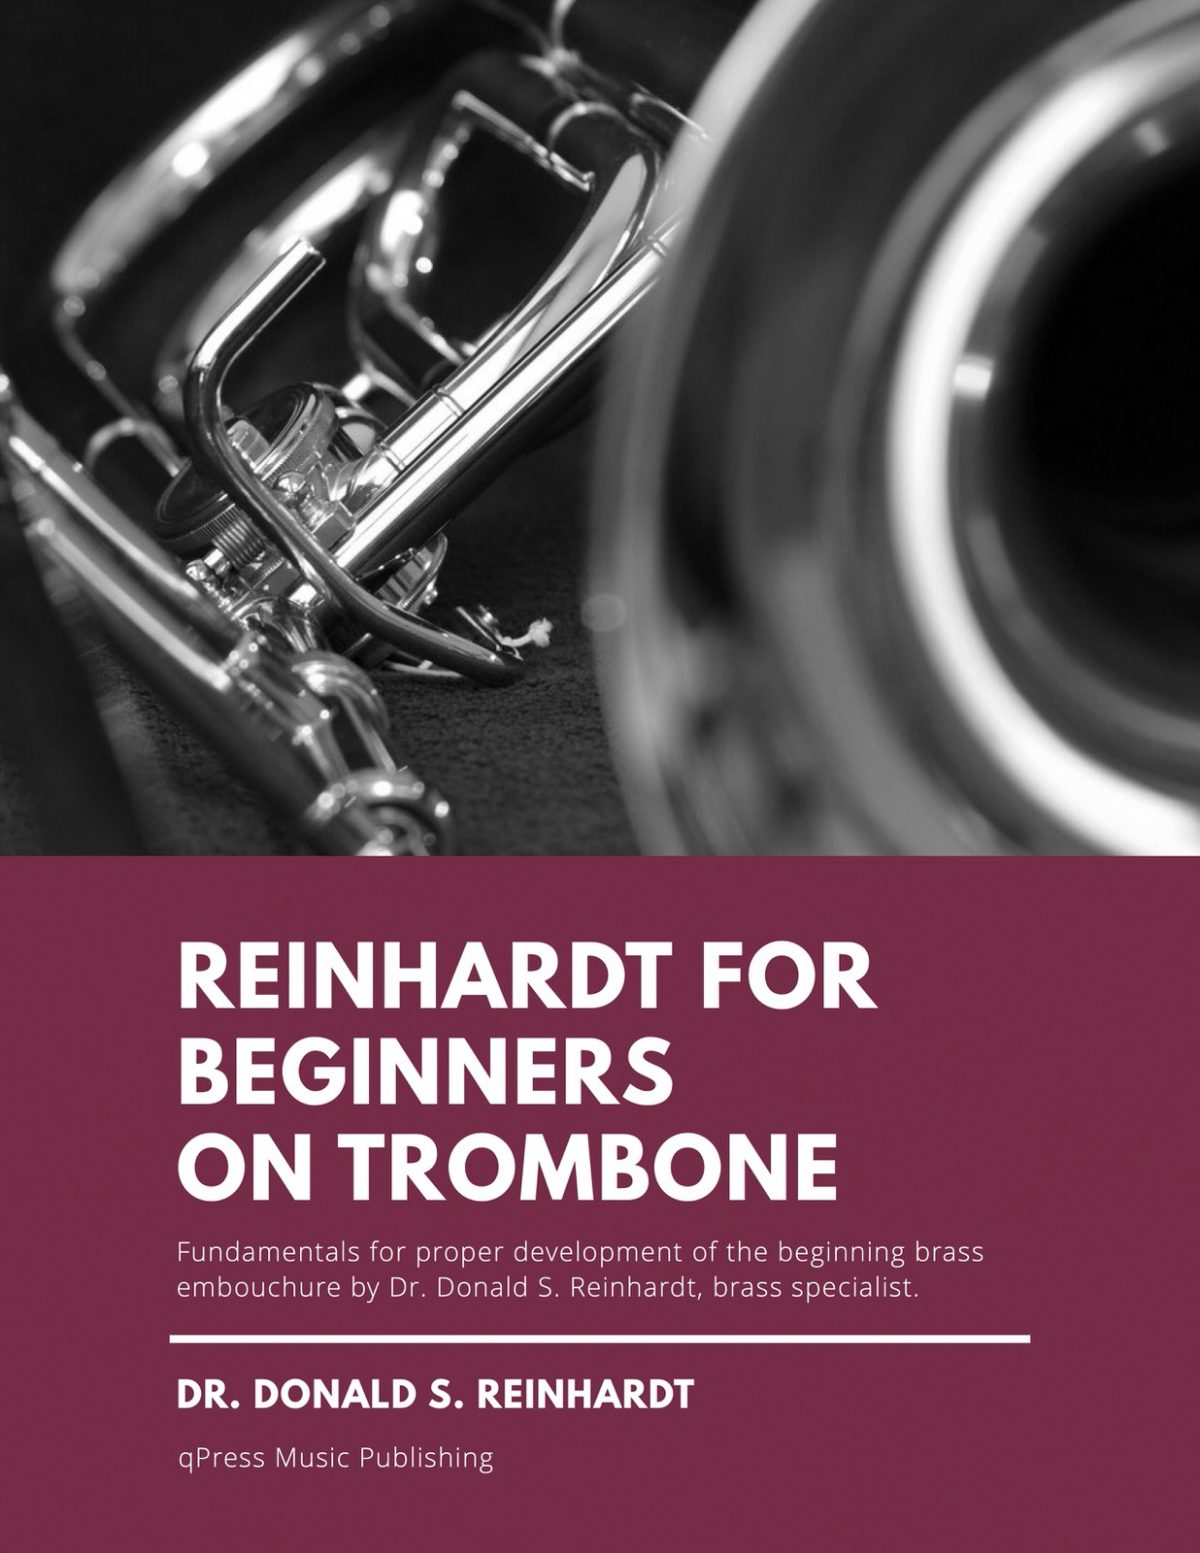 Reinhardt, Reinhardt for Beginners for Trombone, Euphonium or baritone in Bass clef-p01